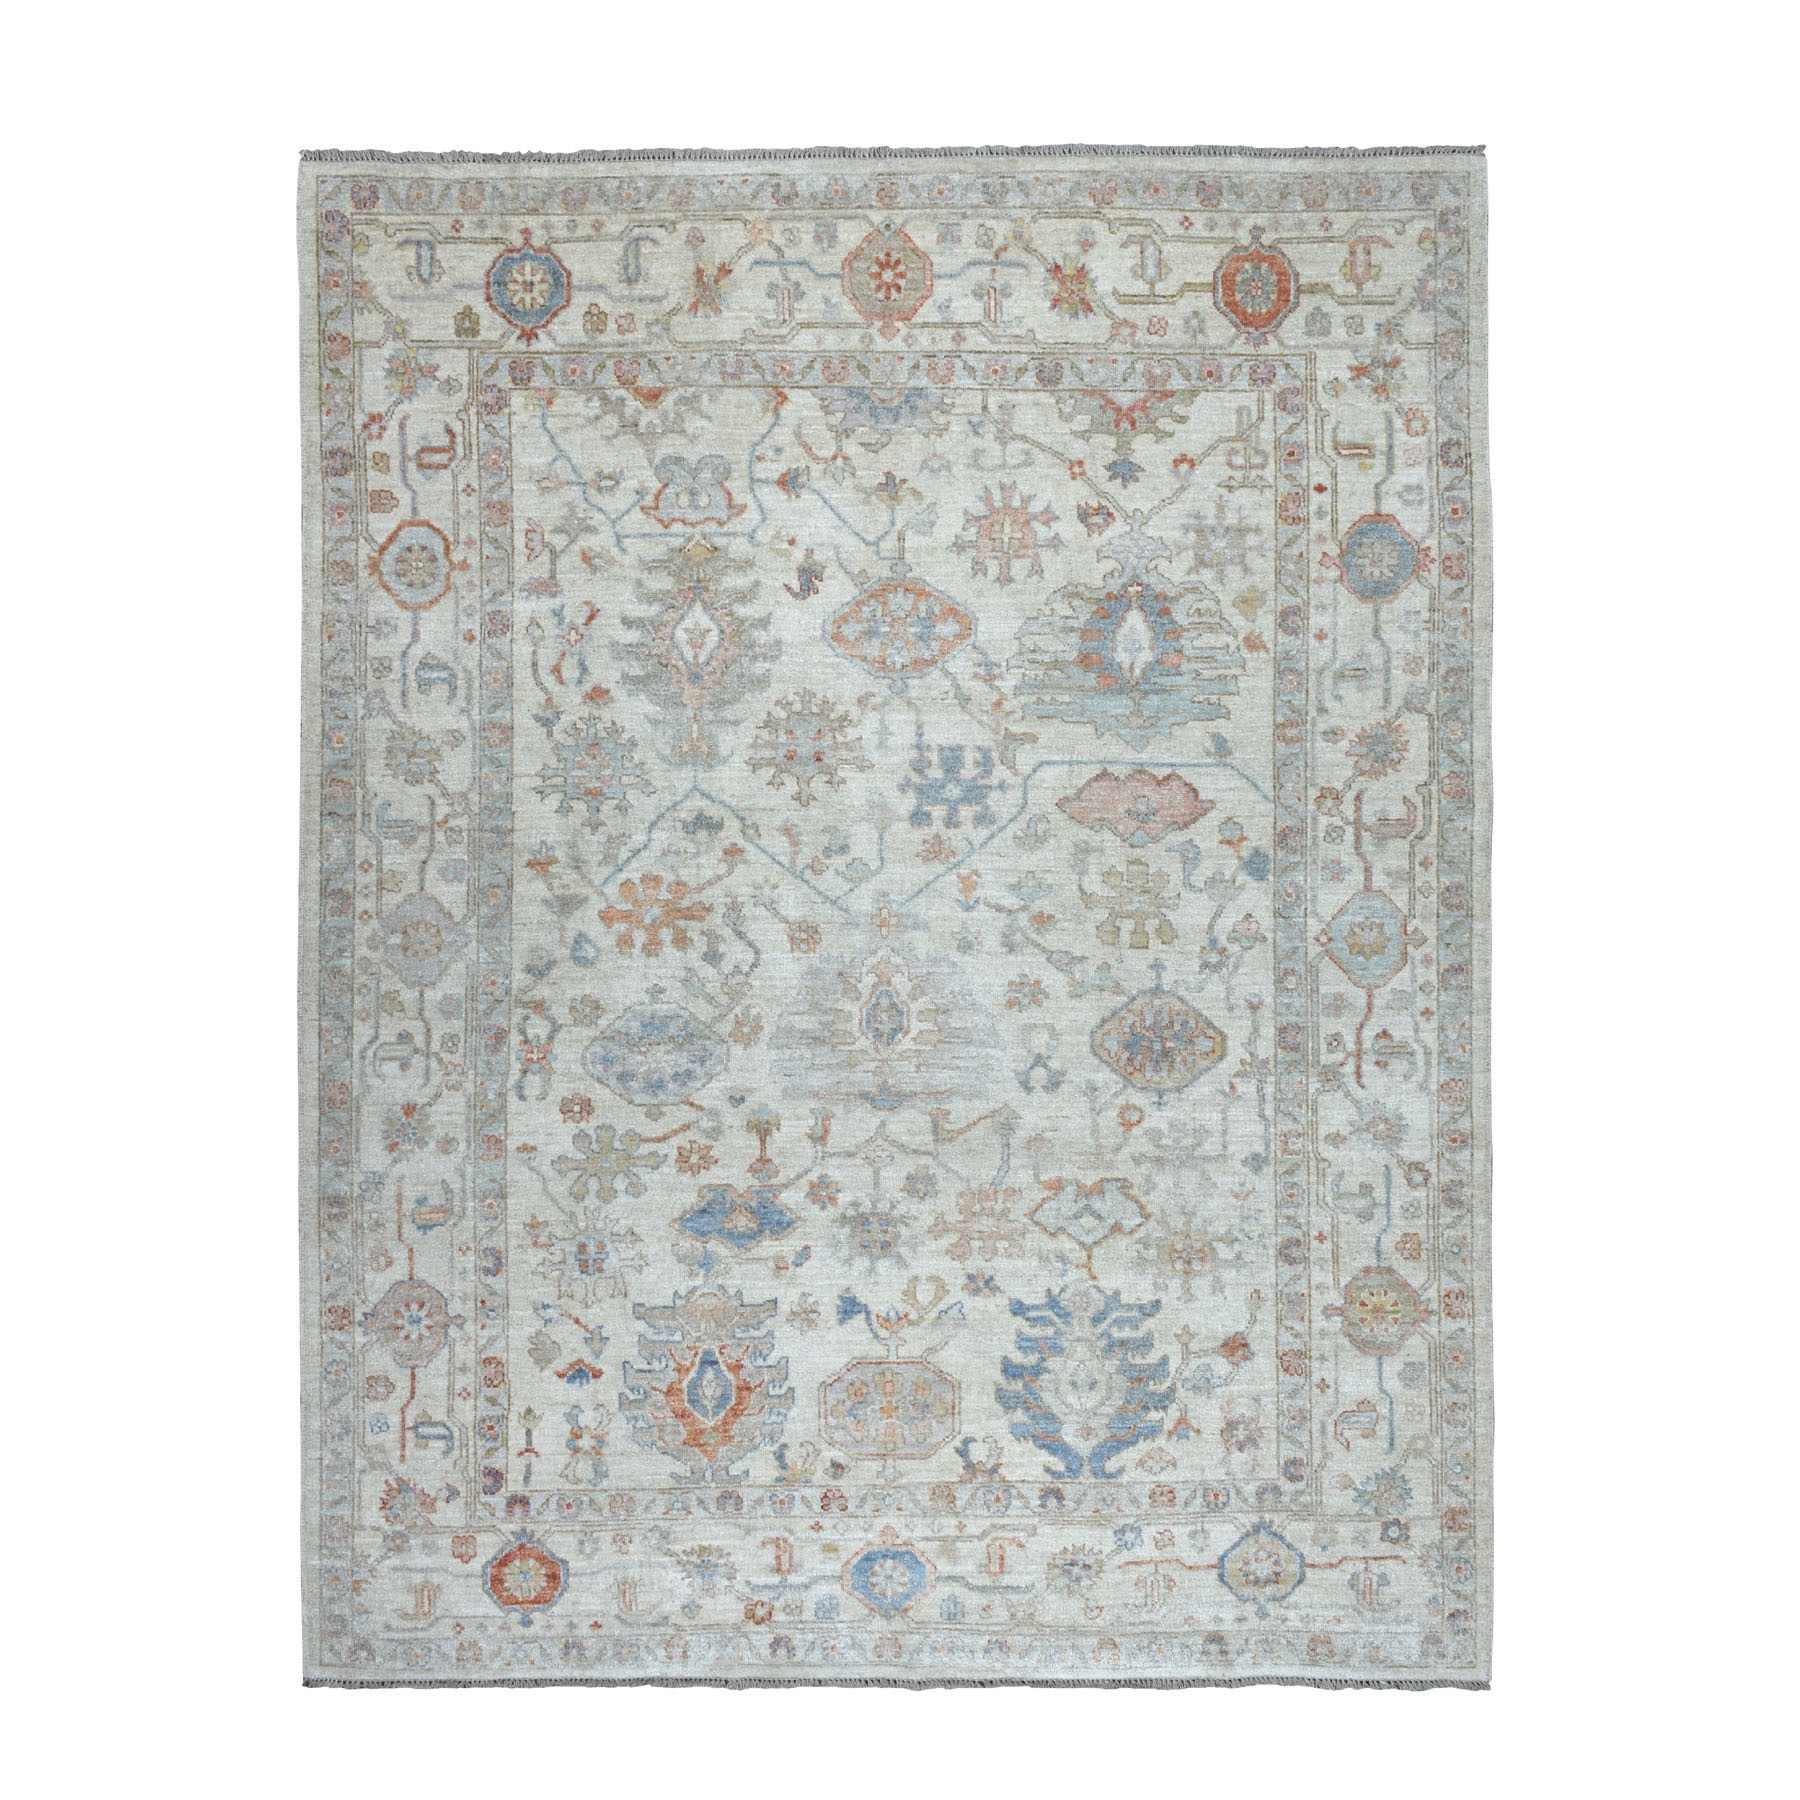 8'X10' Ivory Angora Oushak Pure Wool Hand Knotted Oriental Rug moaeb69a